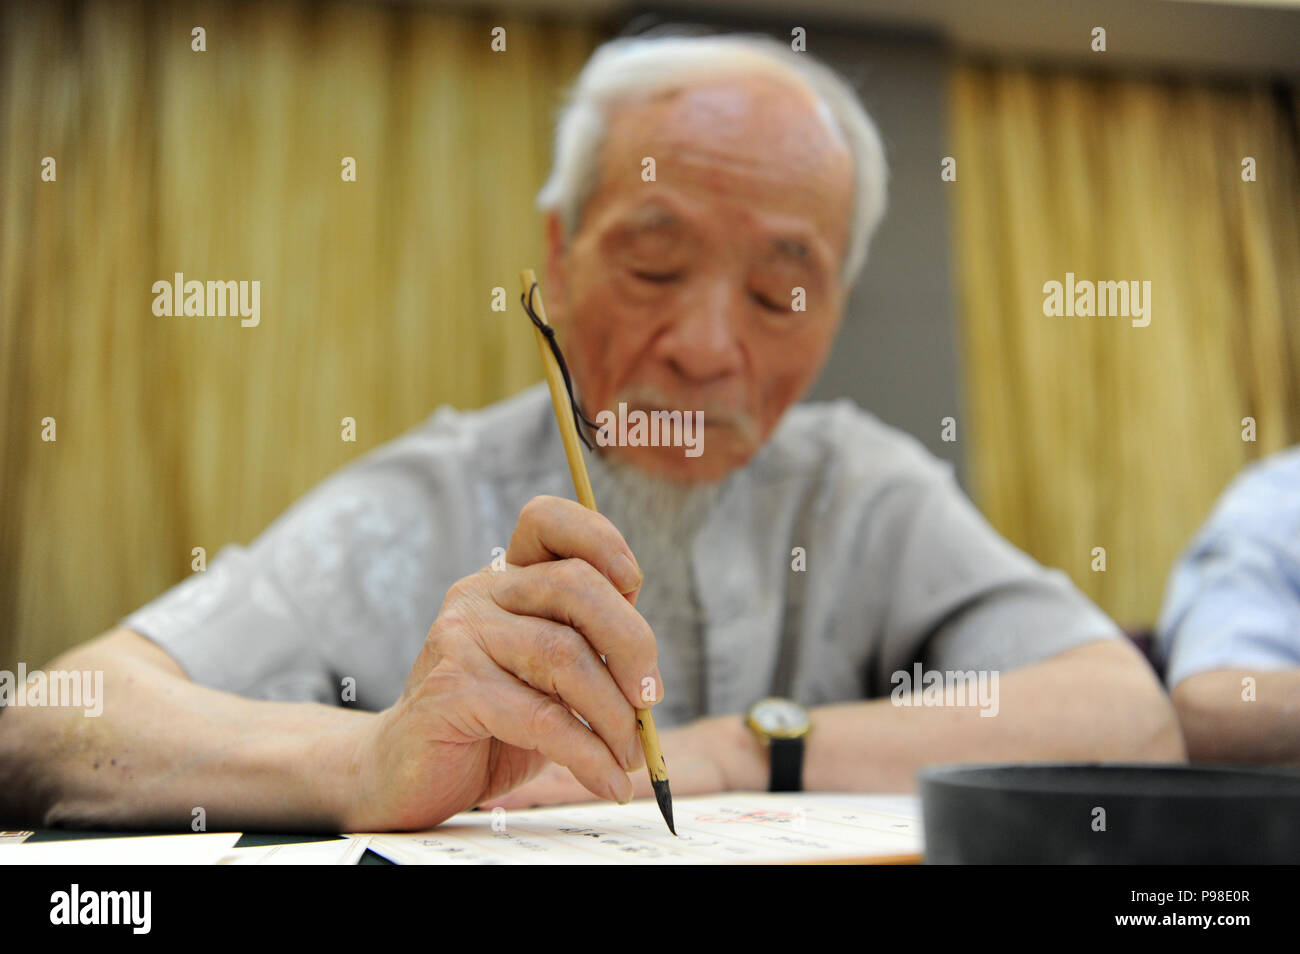 Xi'an, China's Shaanxi Province. 16th July, 2018. Wu Yaohui, a retired teacher from Shaanxi Normal University, writes an admission letter with Chinese writing brush in Xi'an, northwest China's Shaanxi Province, July 16, 2018. Around 4,500 admission letters written by representatives of alumni and retired teachers from Shaanxi Normal University will be delivered to freshmen. The hand-written admission letter has become a feature of Shaanxi Normal University since 2007 Credit: Zhang Bowen/Xinhua/Alamy Live News - Stock Image